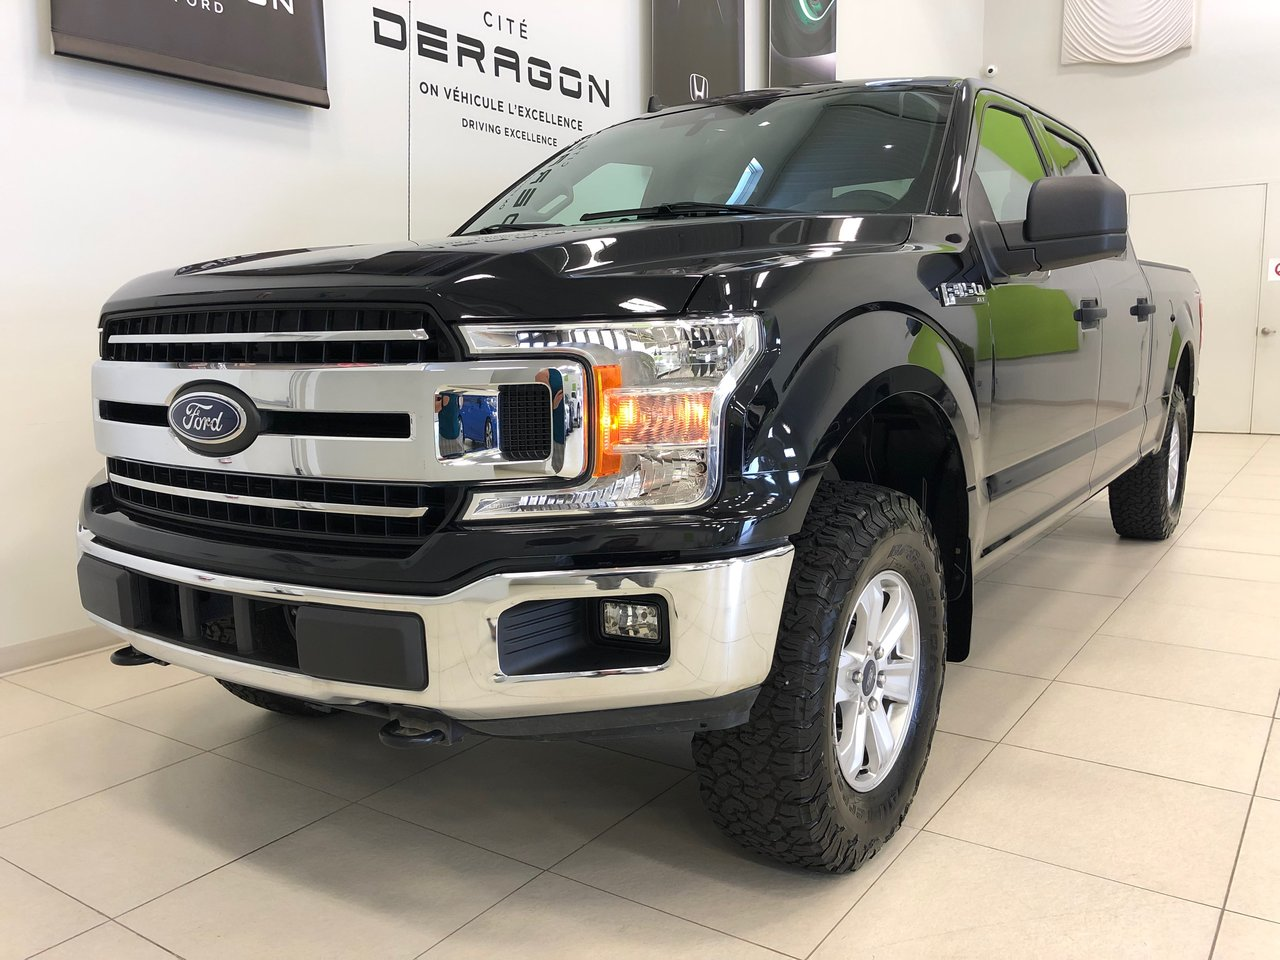 Ford F-150 2019 XLT CREW CAB, V8 5.0L, TOWING PACK, CAMÉRA